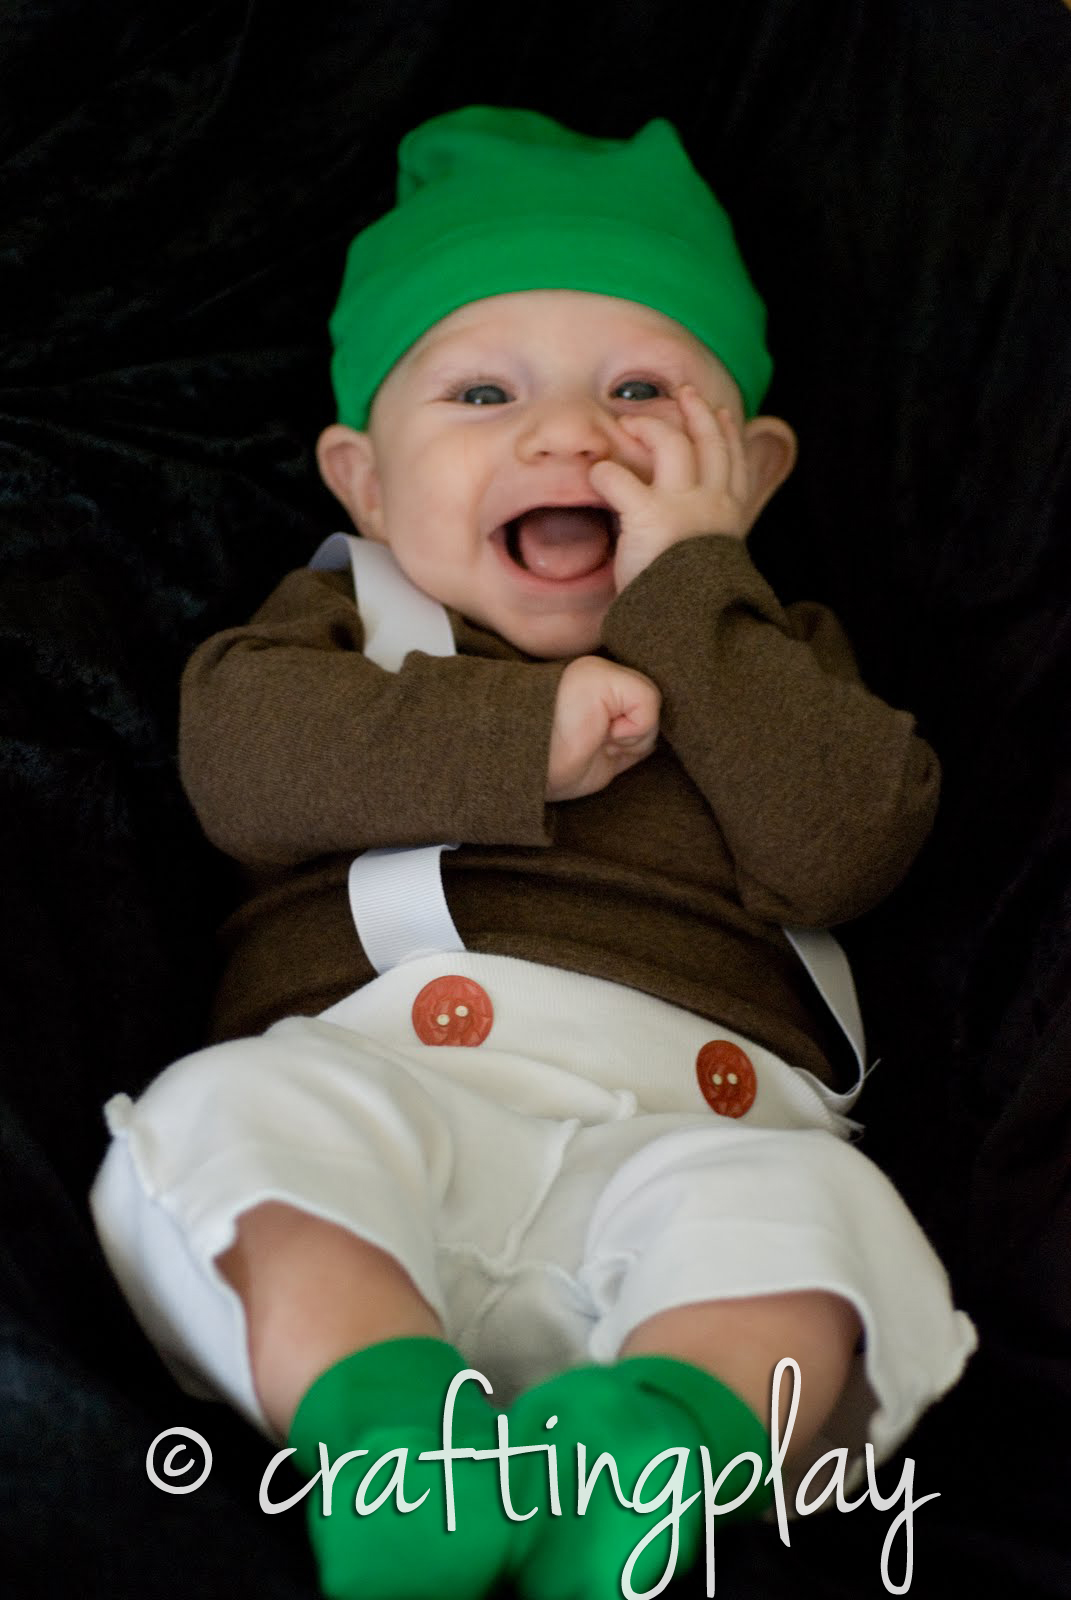 Crafting Play Make Your Own Infant Oompa Loompa Costume